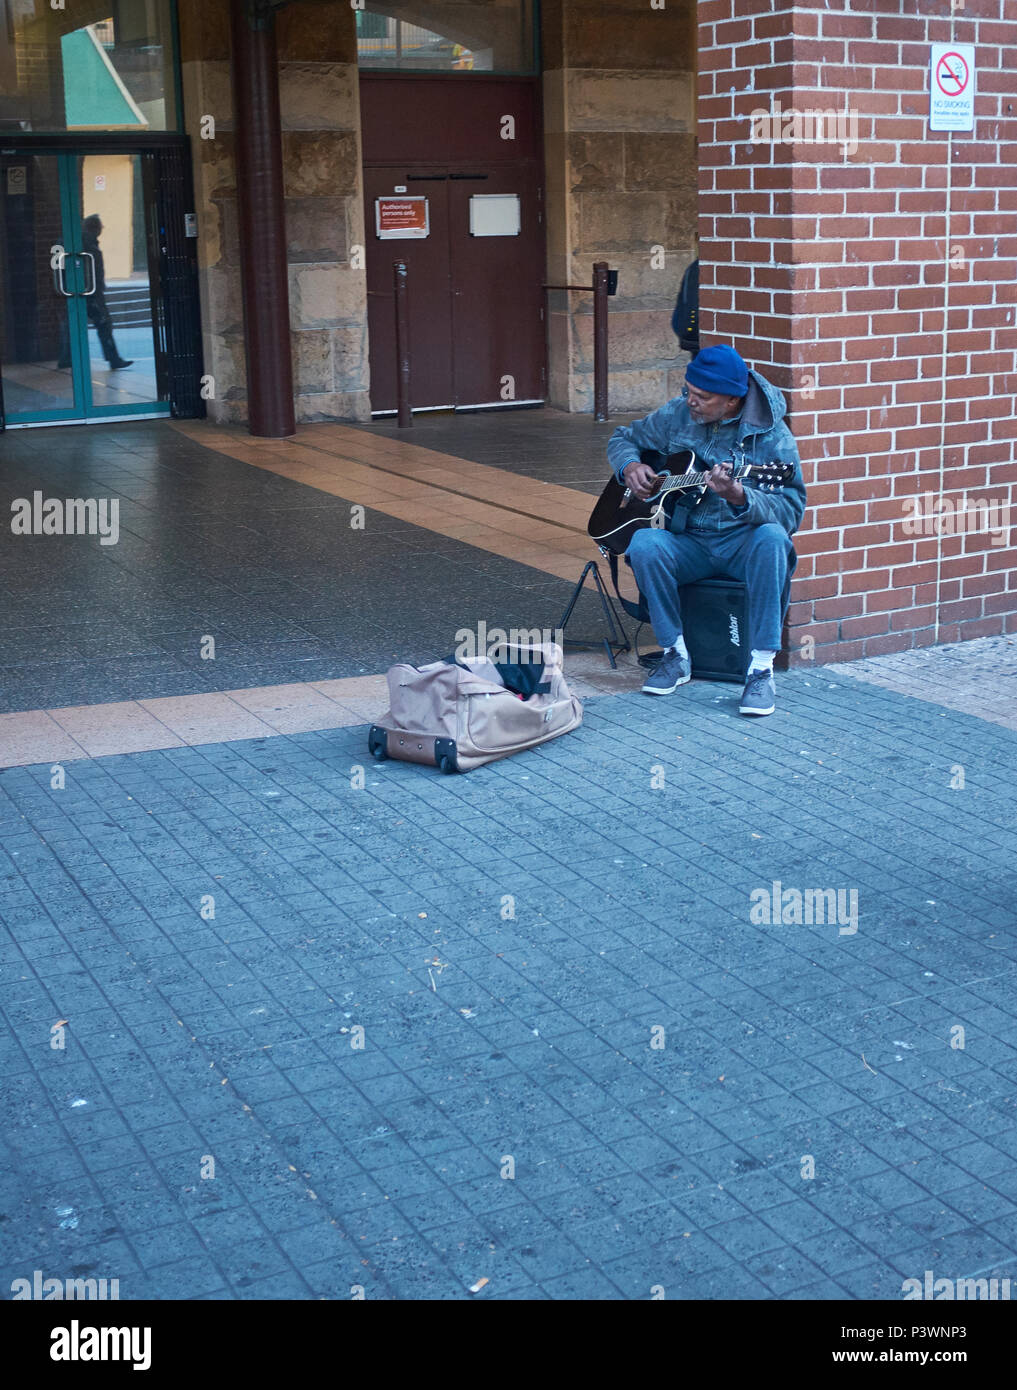 A busker sat on a loud speaker lent against a brick wall playing a guitar with a bag in front of him waiting for a donation, Sydney, Australia - Stock Image